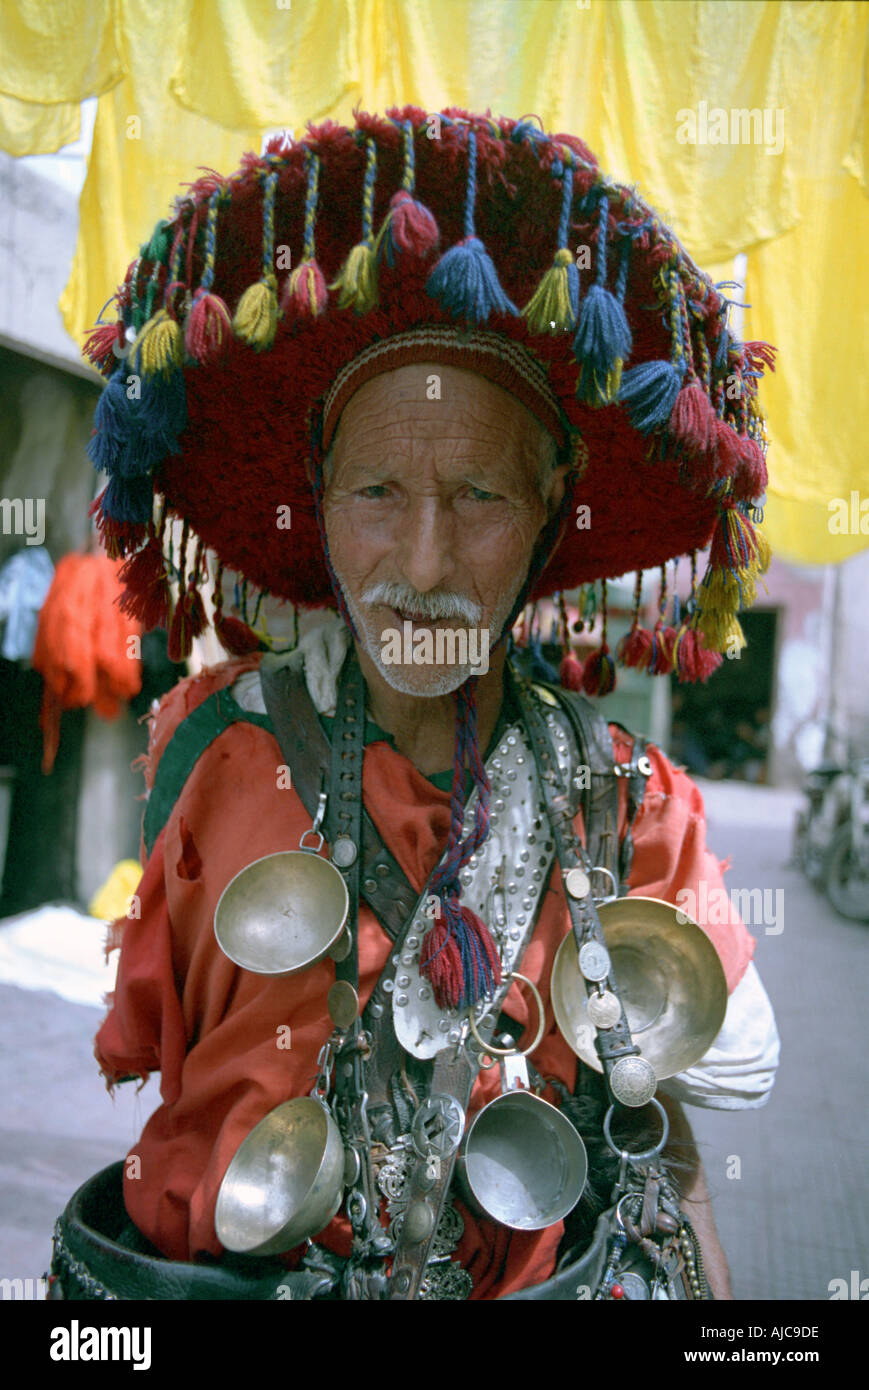 Water seller wearing bright attire in the souk of Marrakesh Morocco - Stock Image